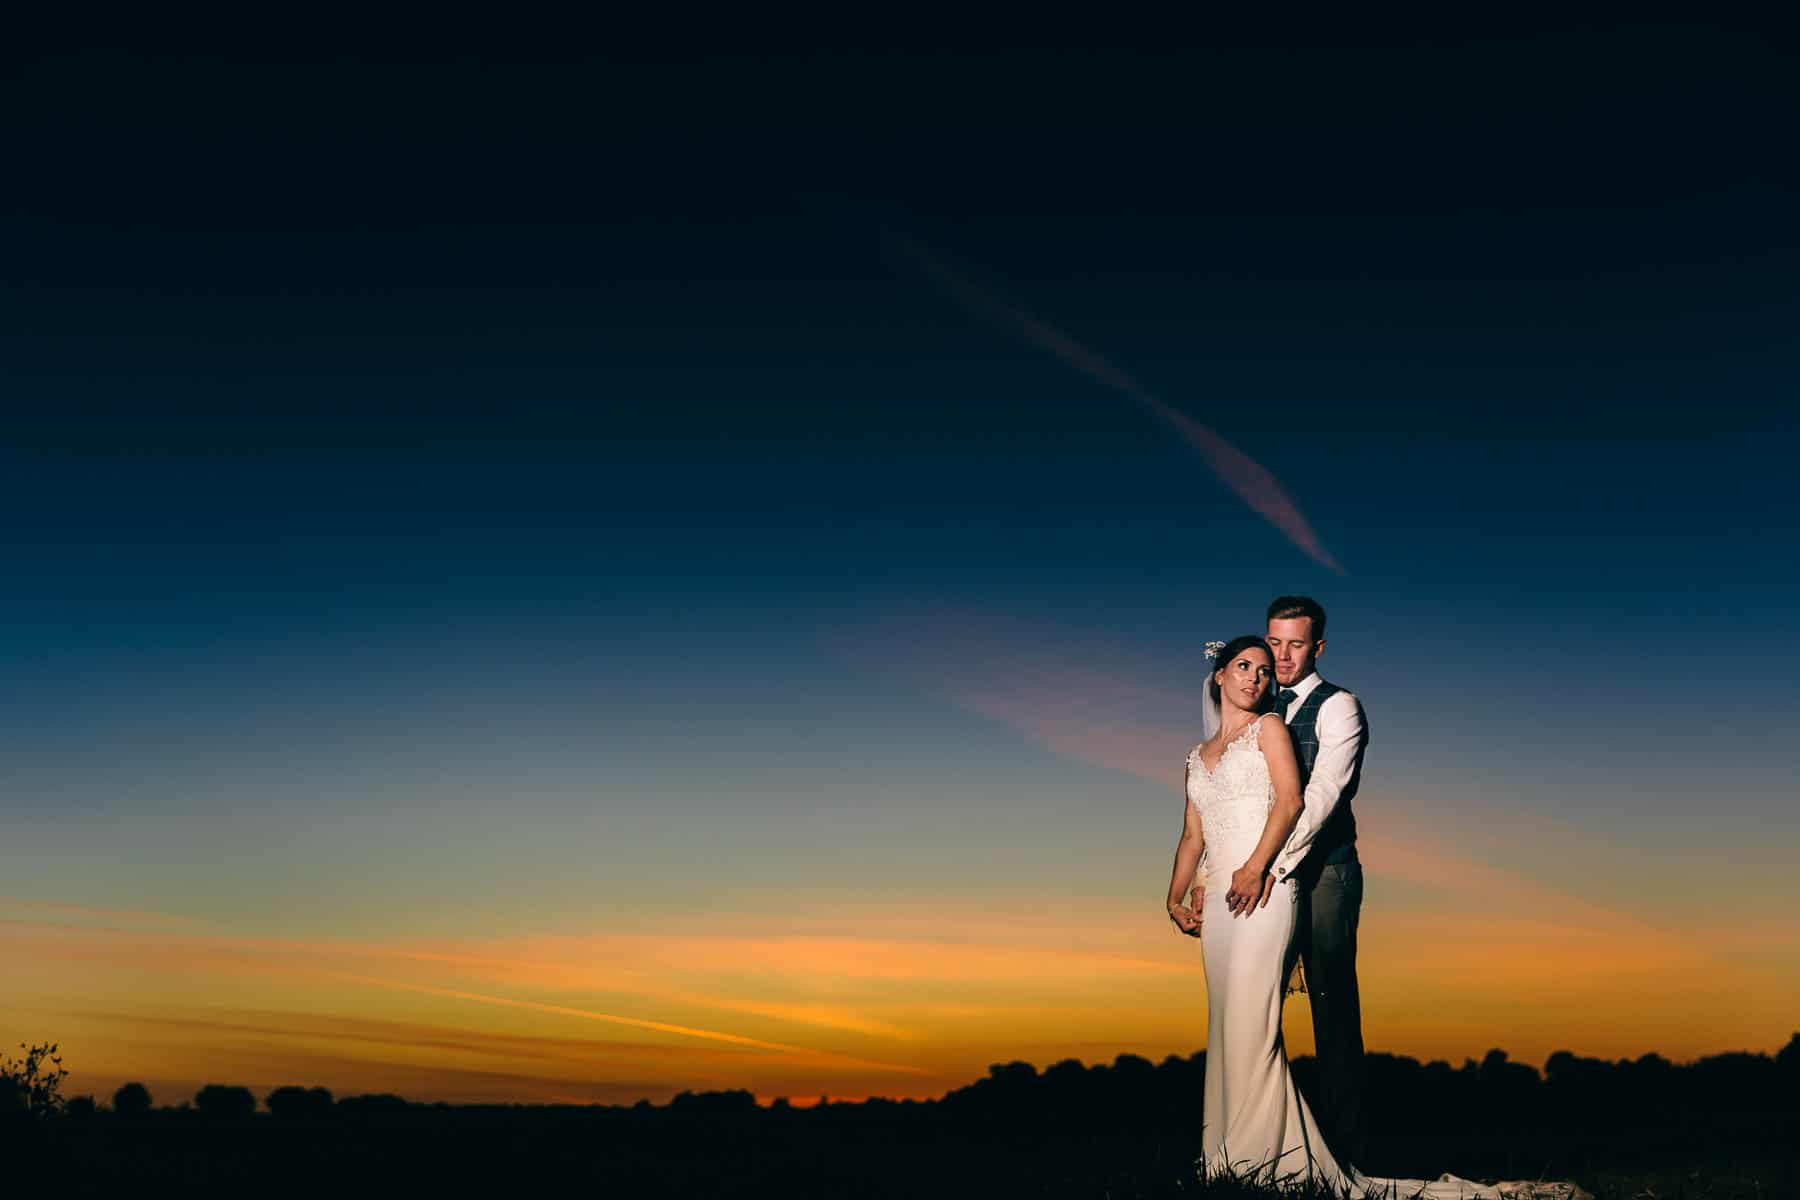 Beautiful dusk wedding photography using OCF magmod